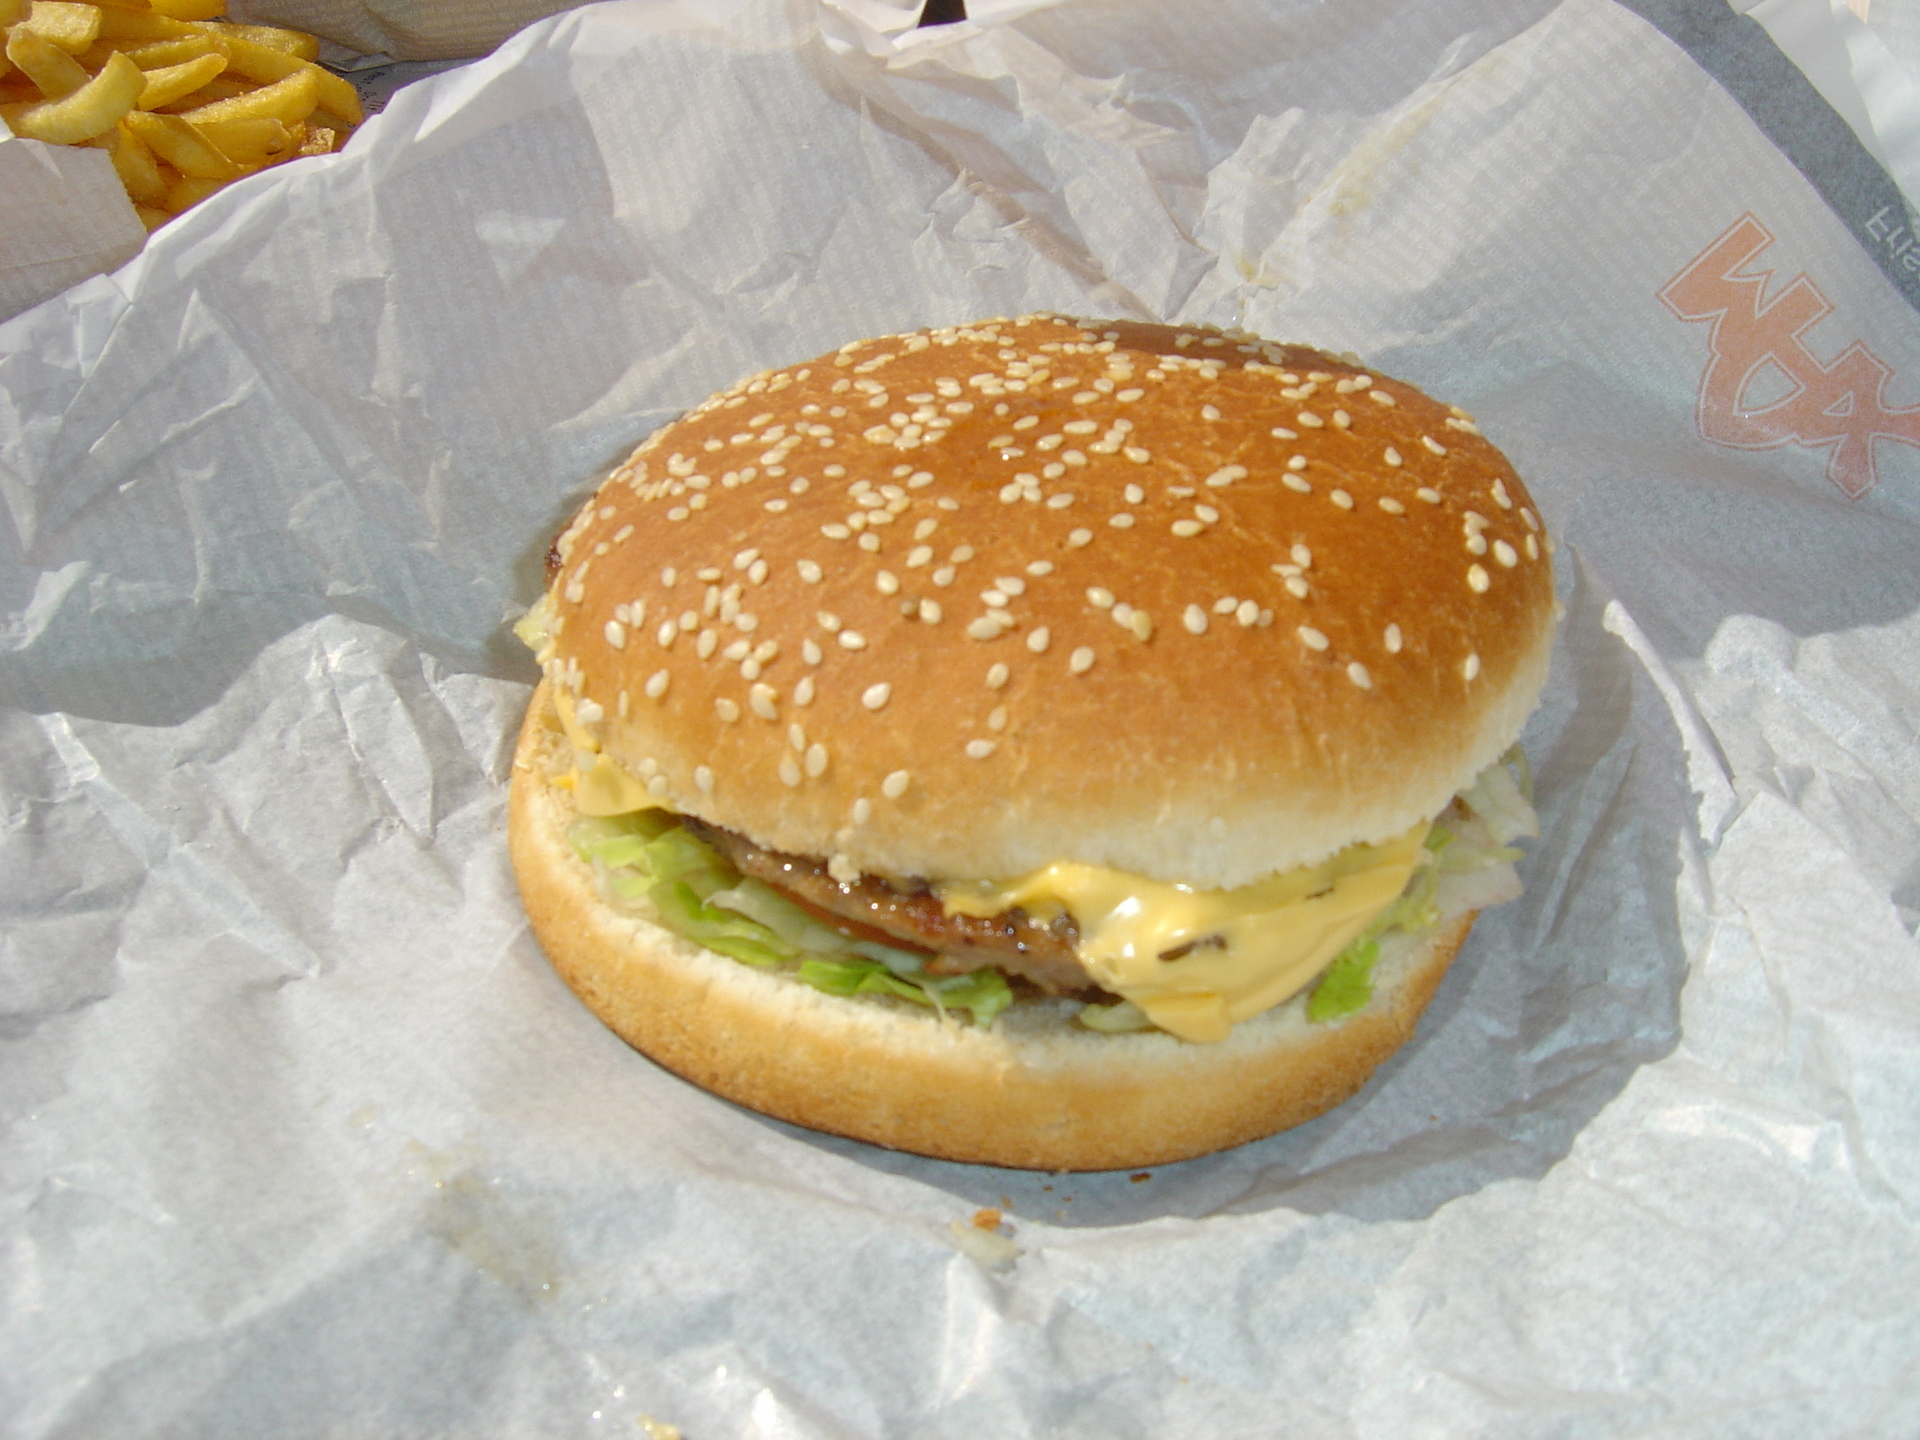 plain boring burger